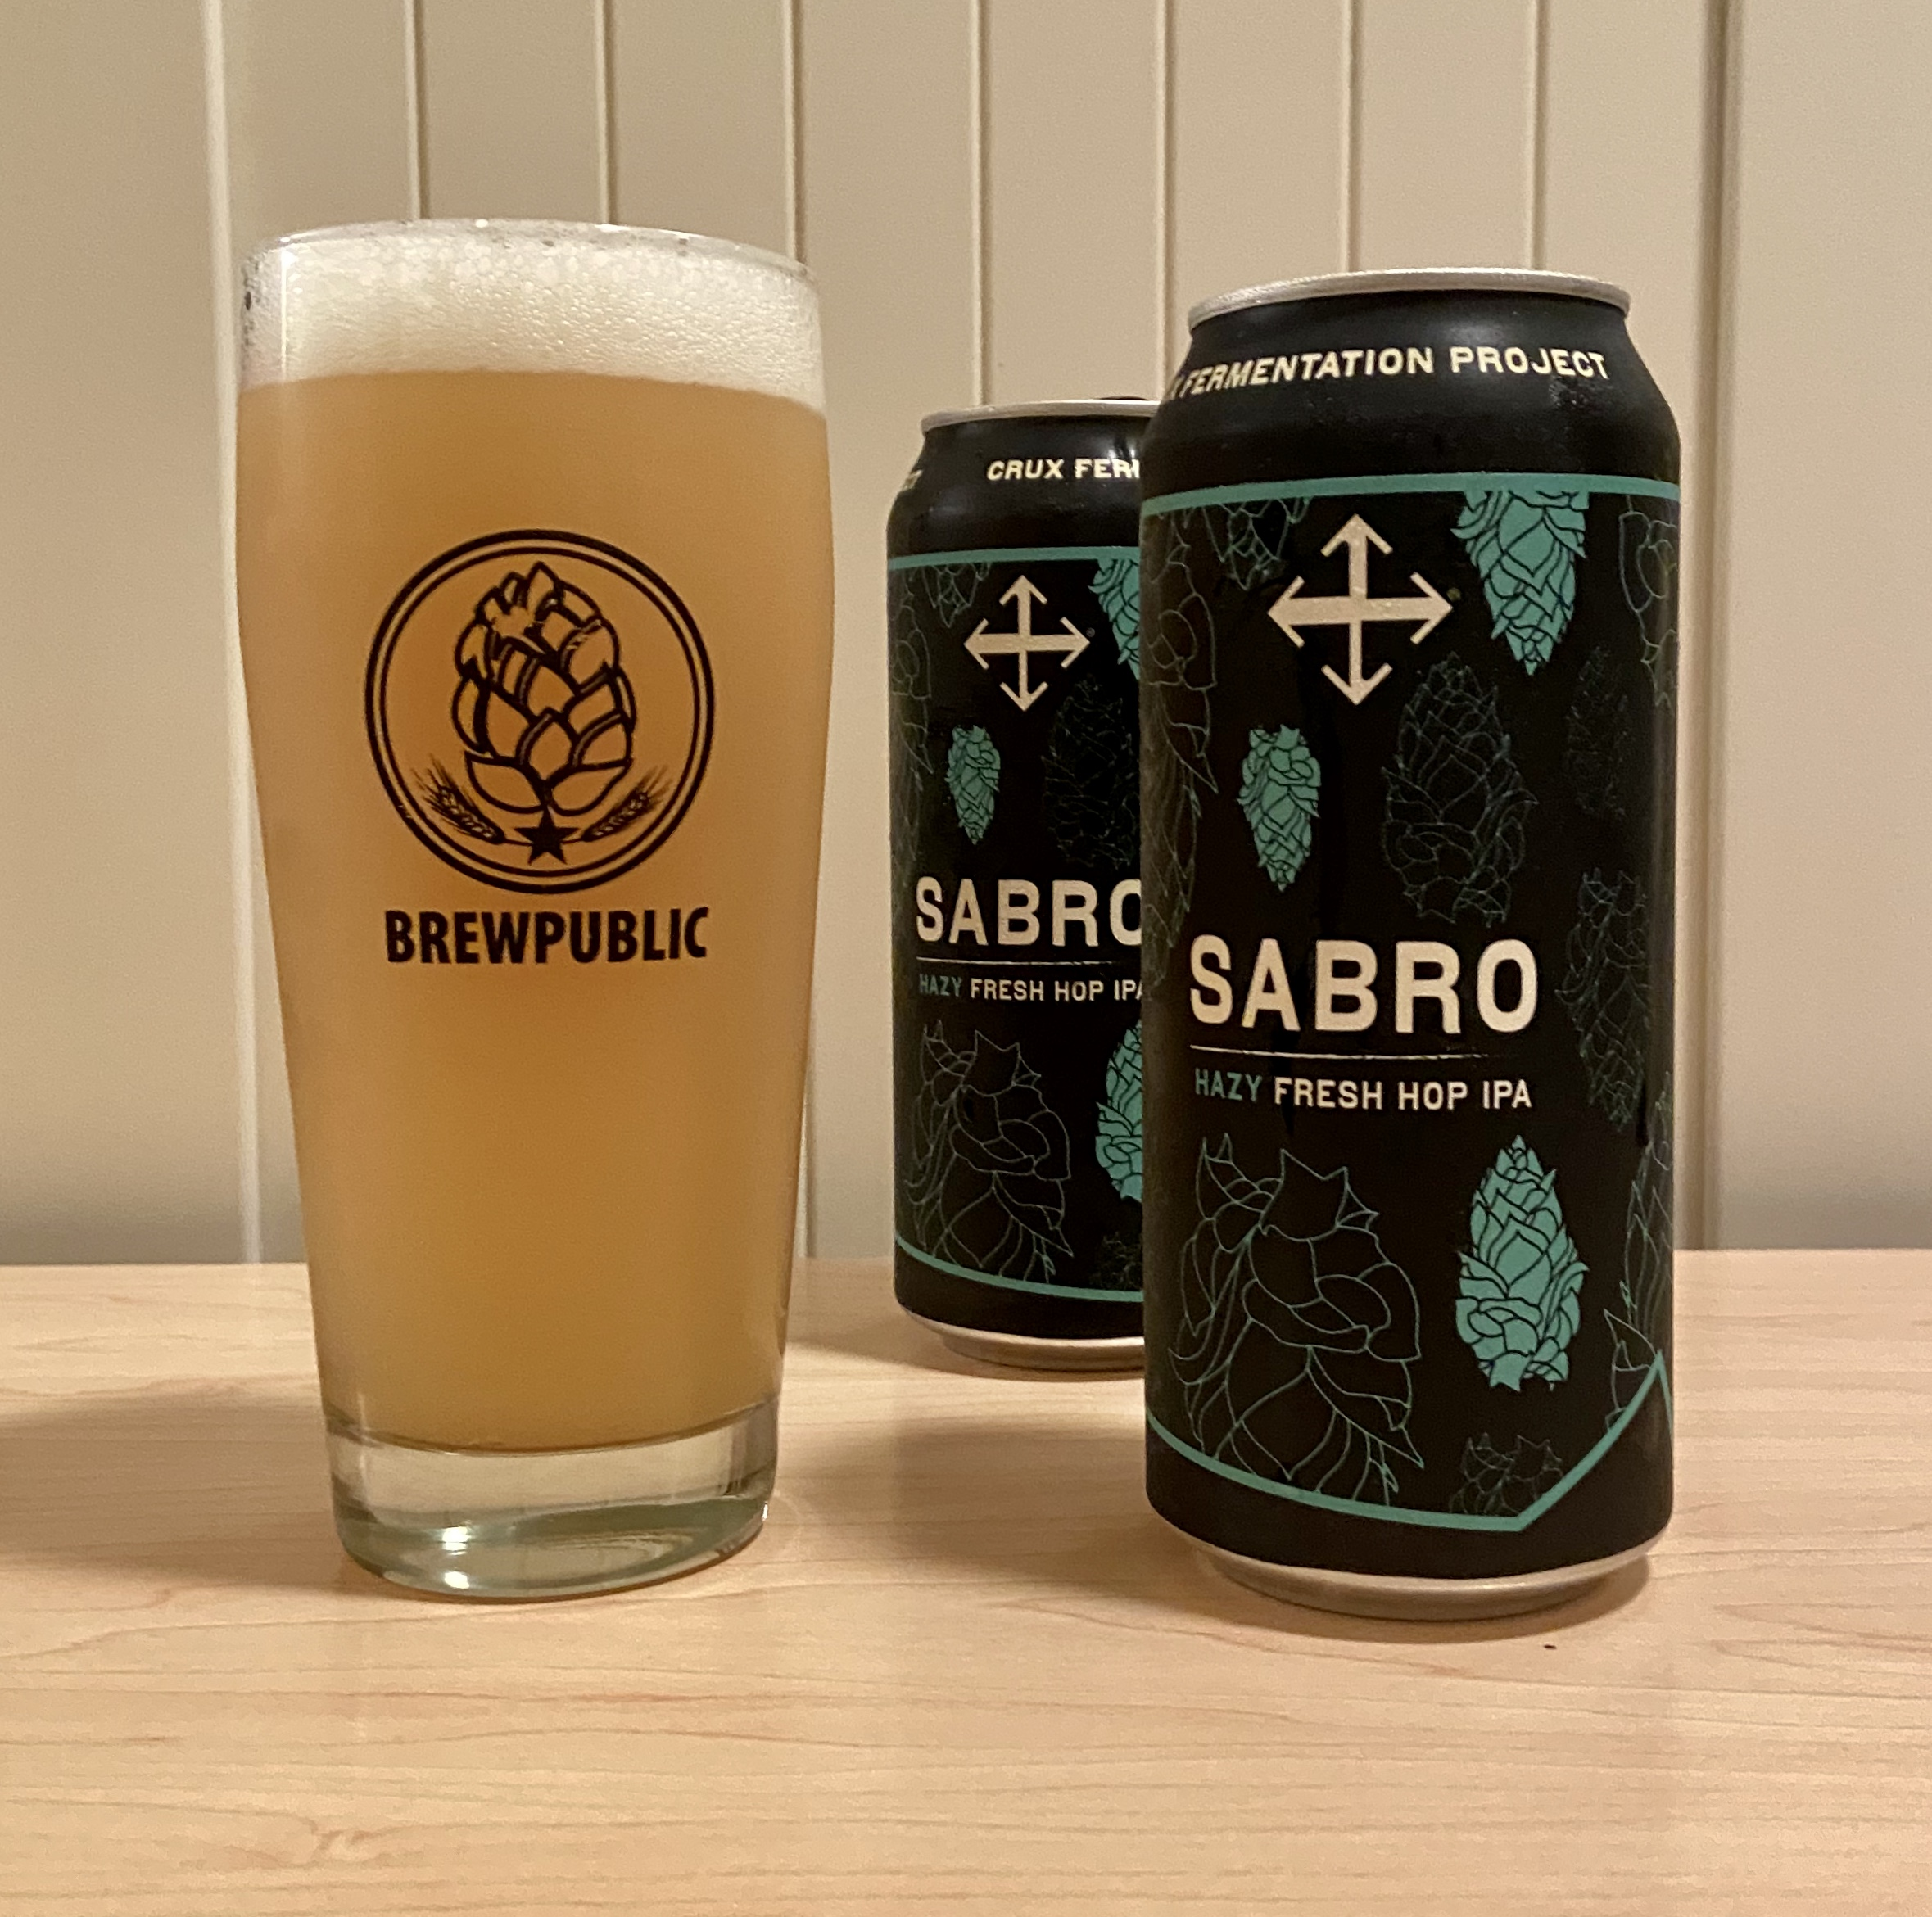 The new Sabro Hazy Fresh Hop IPA from Crux Fermentation Project is available in 16oz cans while they last.